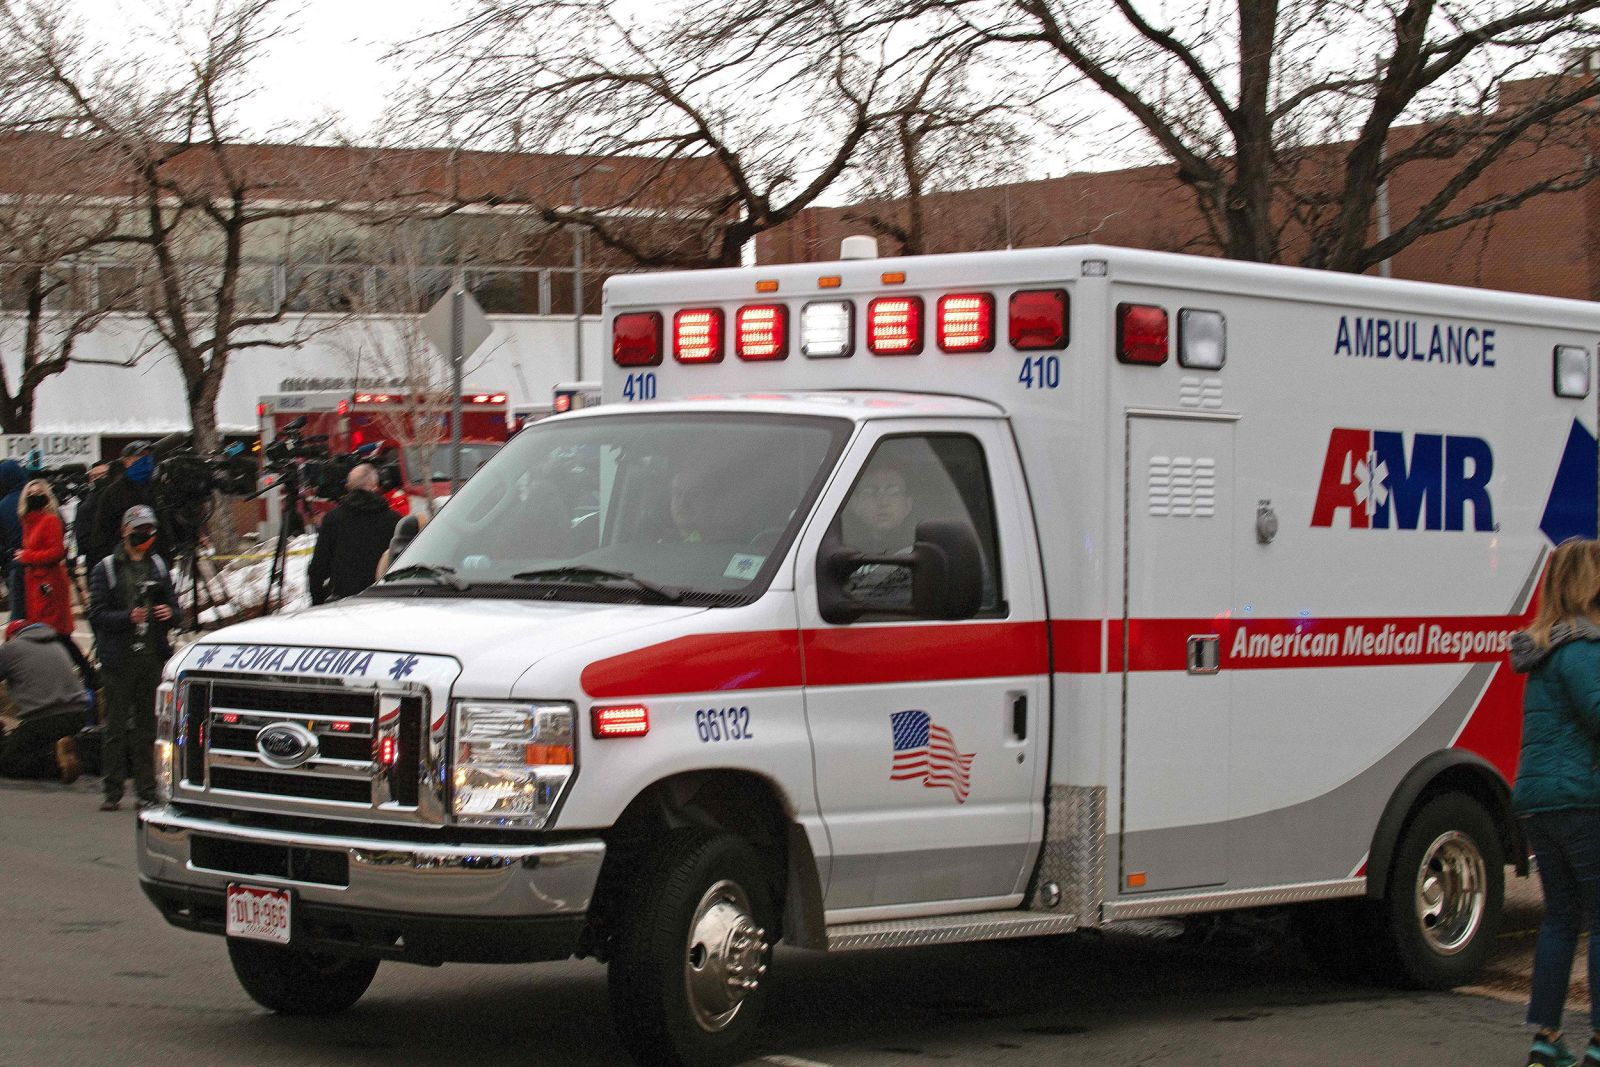 An ambulance leaves the parking lot of the King Soopers grocery store in Boulder, Colorado. Photo: AFP